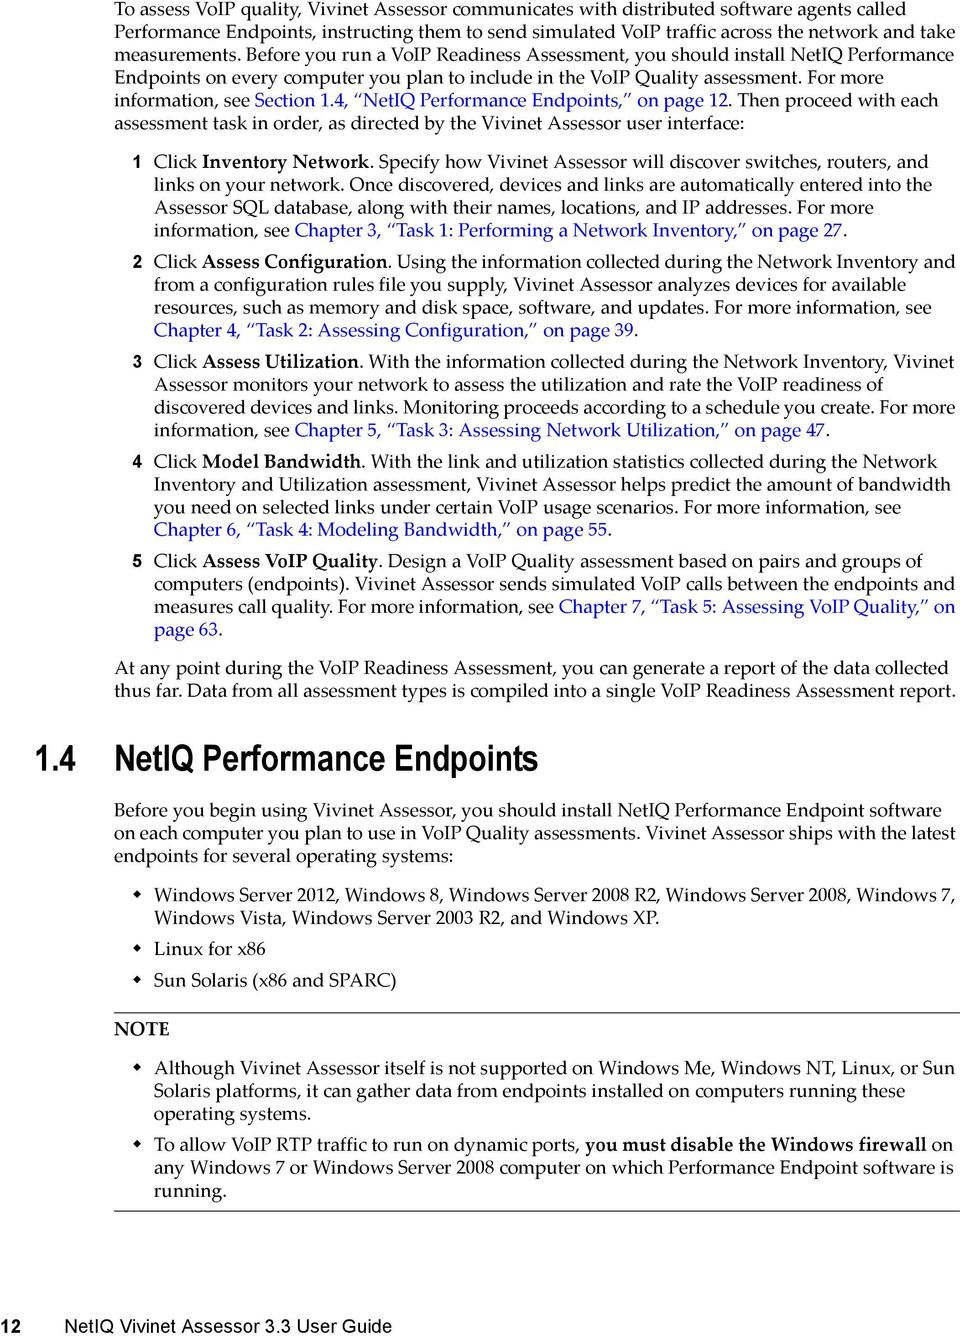 For more information, see Section 1.4, NetIQ Performance Endpoints, on page  12.